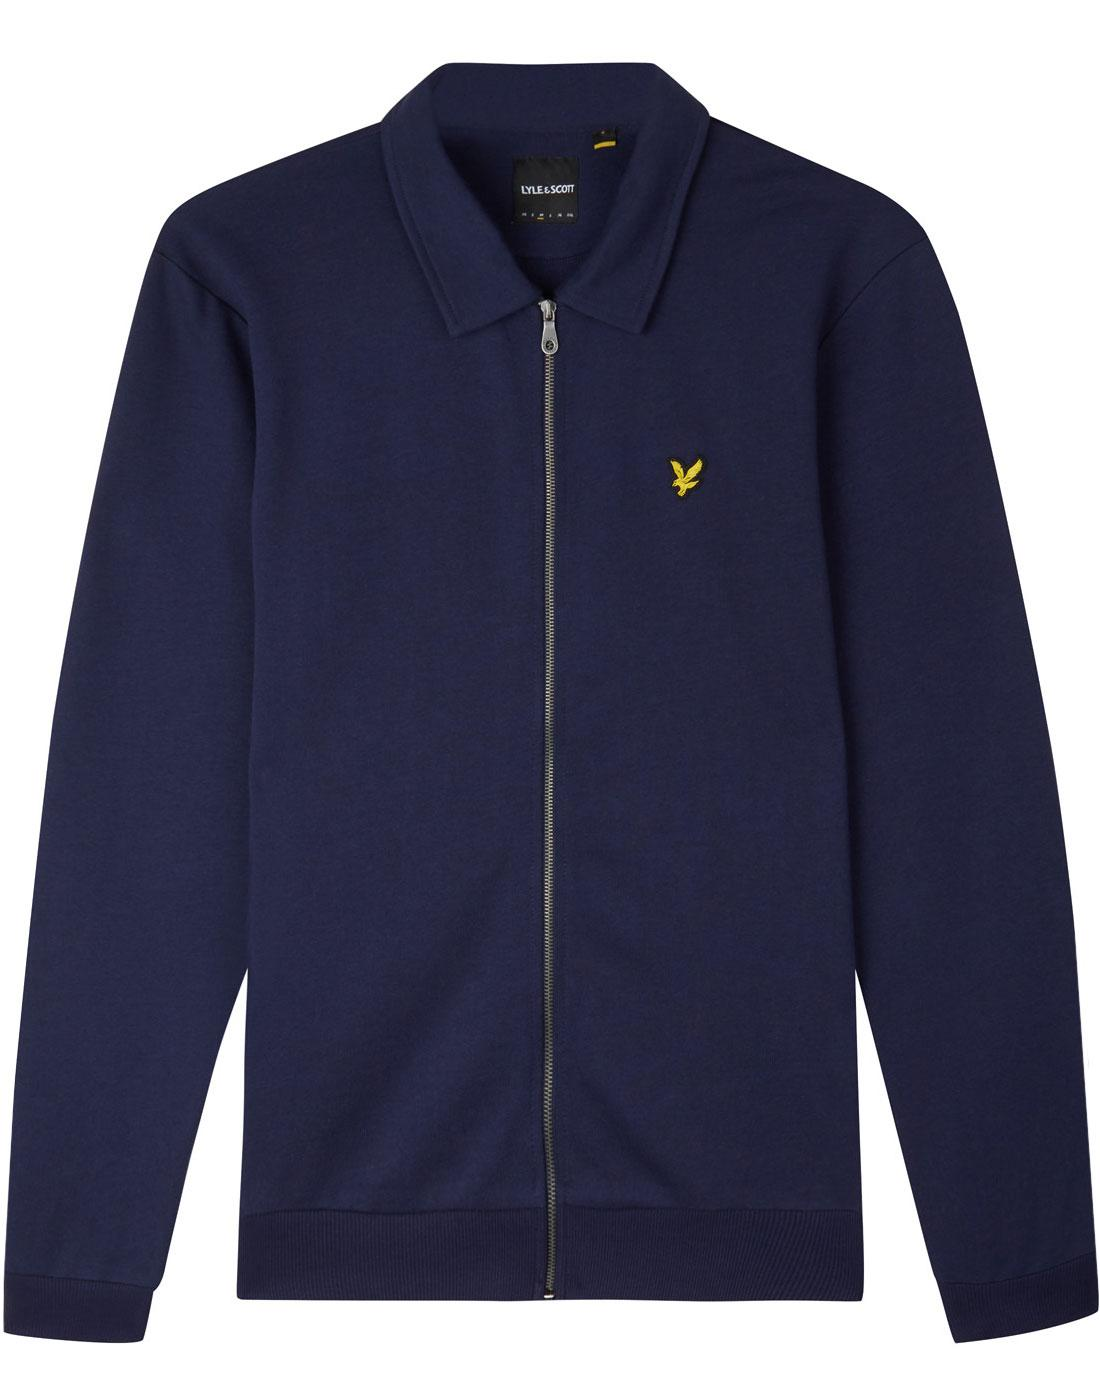 LYLE & SCOTT Retro 90s Collared Bomber Jacket NAVY